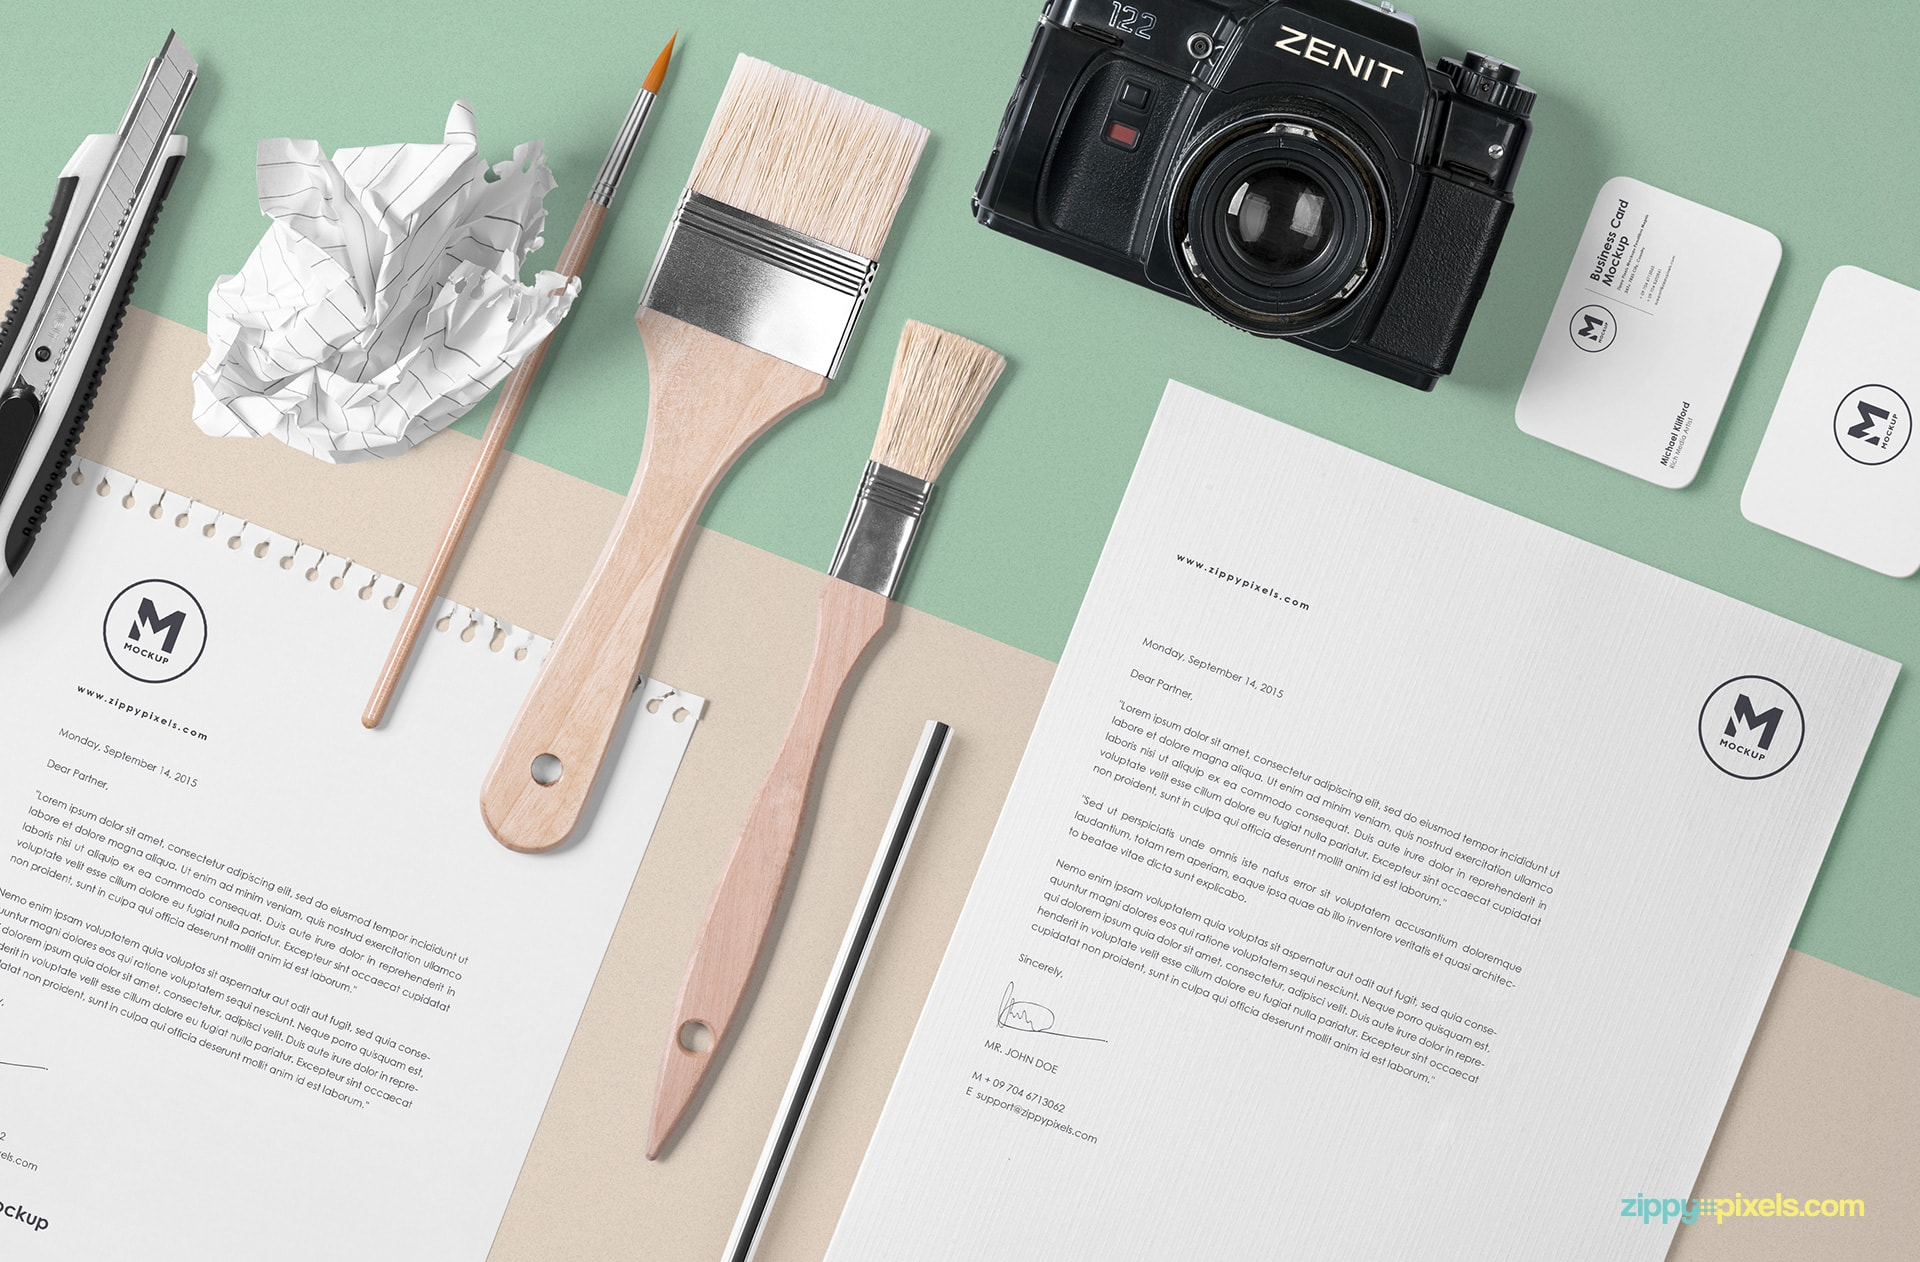 mockup-scene-letterhead-diary-paper-brushes-camera-card